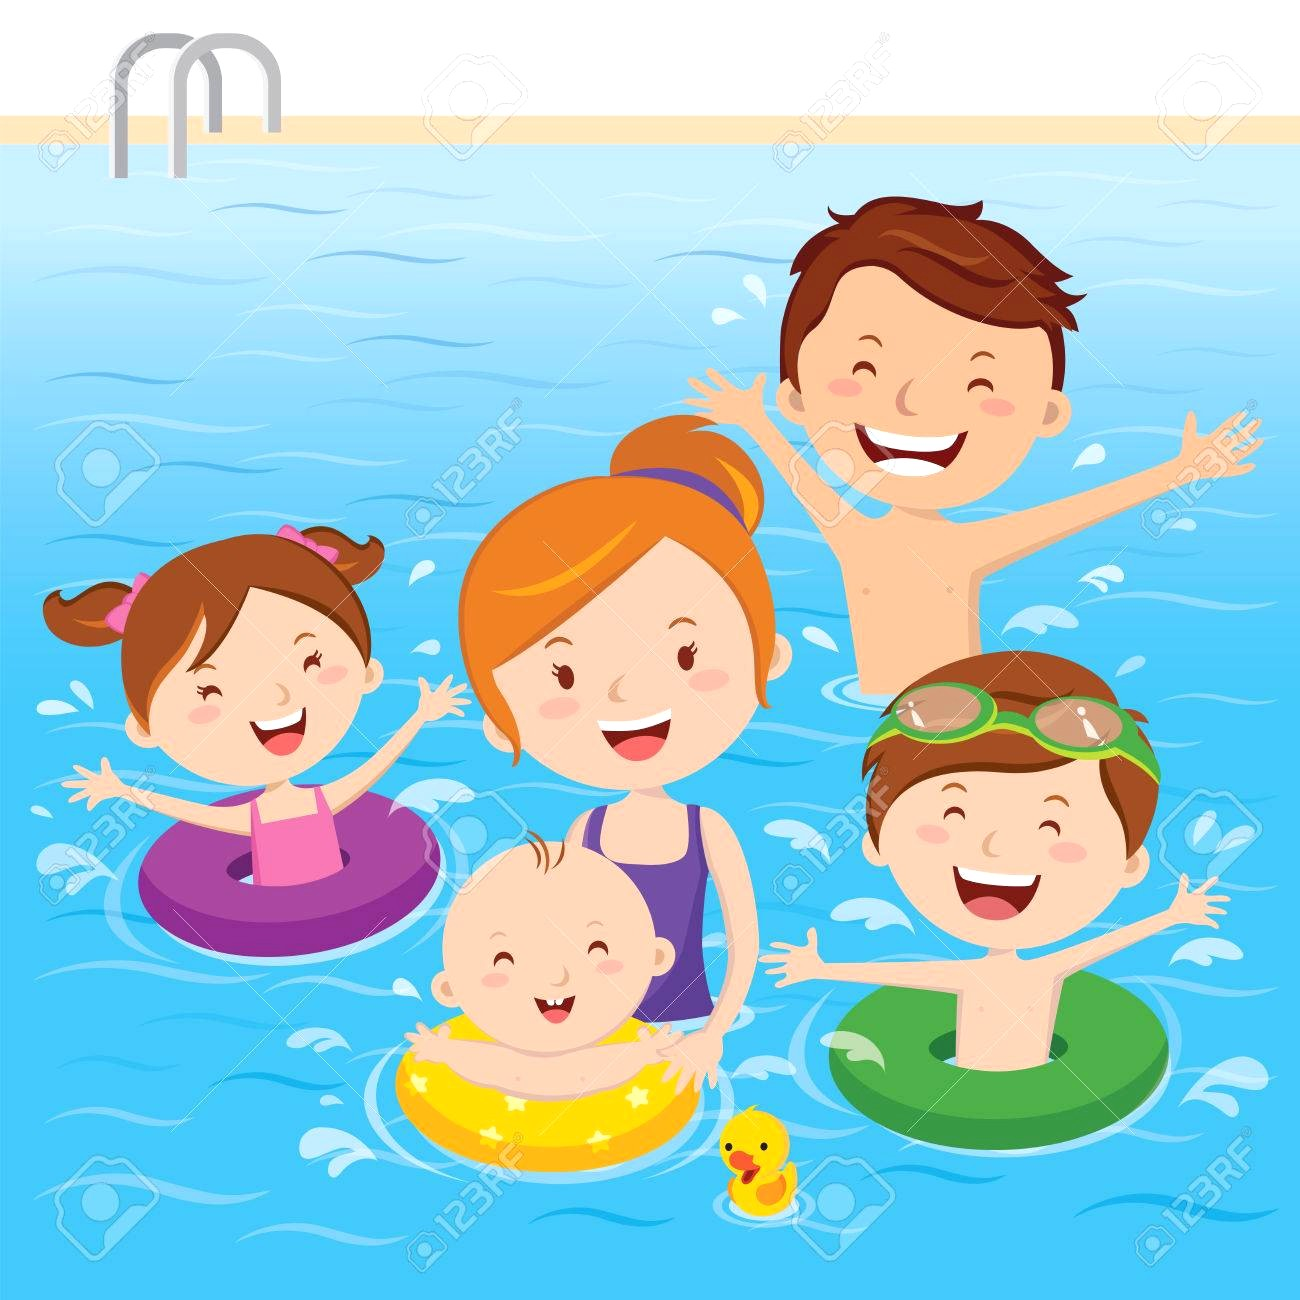 People swimming clipart 2 » Clipart Station.